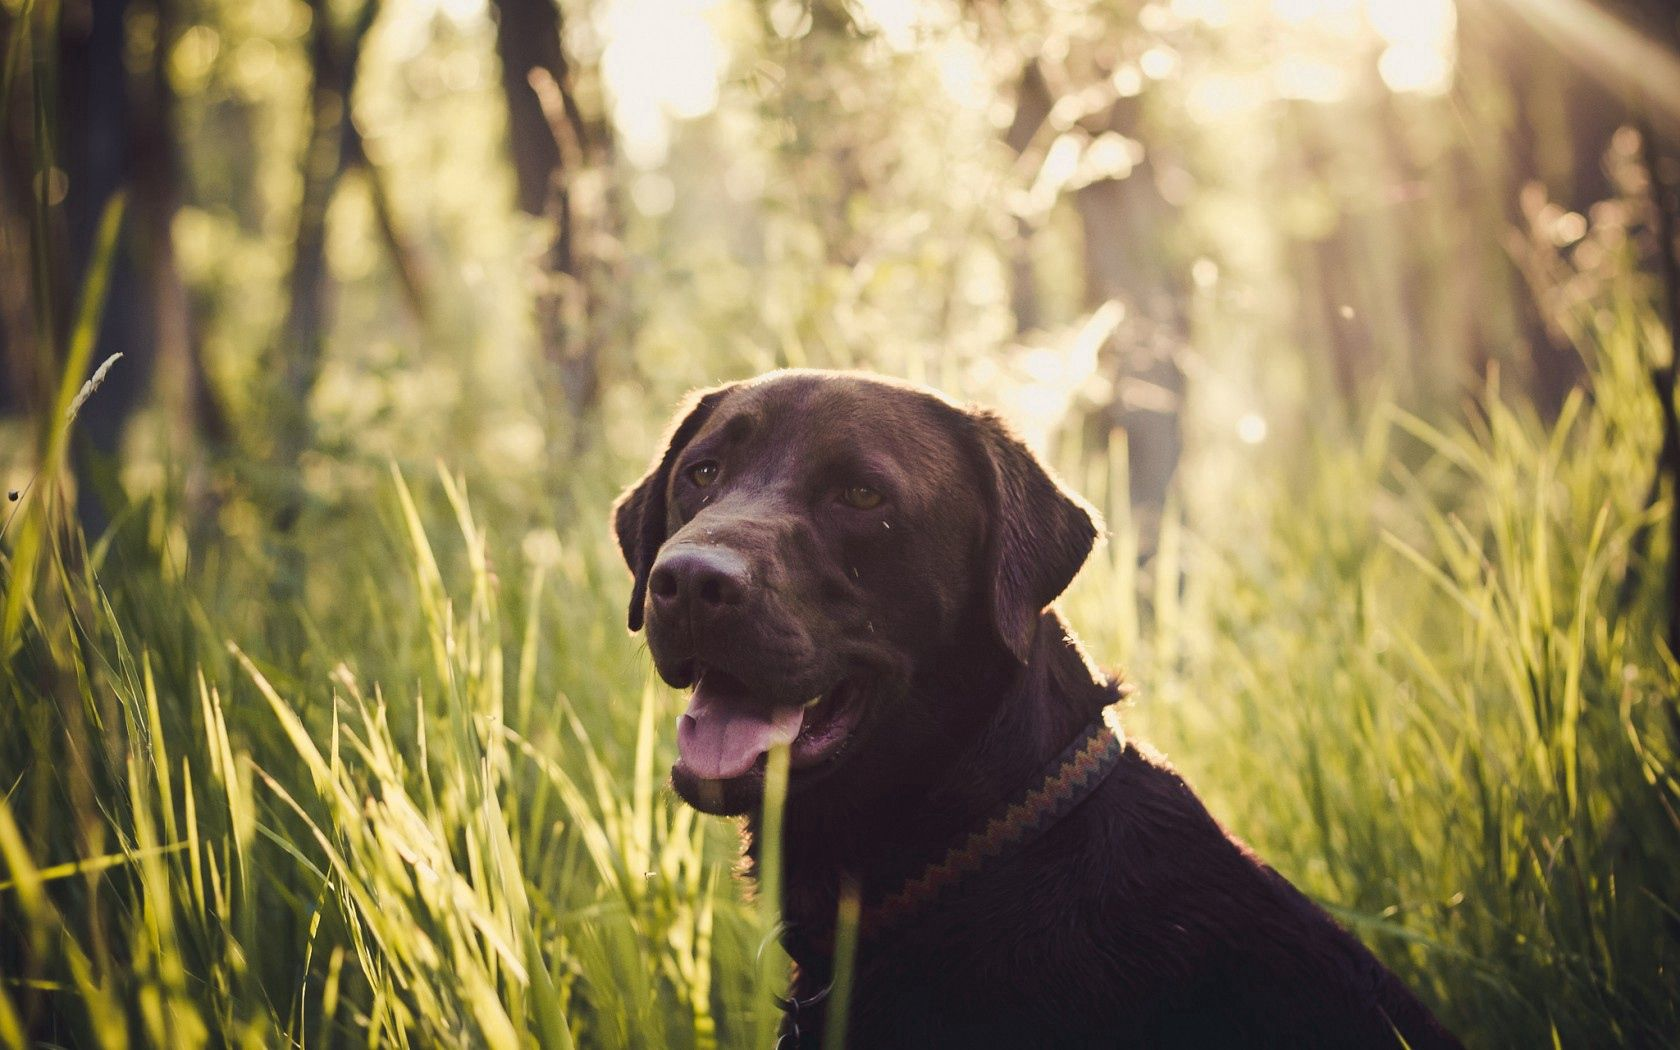 145475 download wallpaper Animals, Dog, Muzzle, Grass, Sight, Opinion screensavers and pictures for free